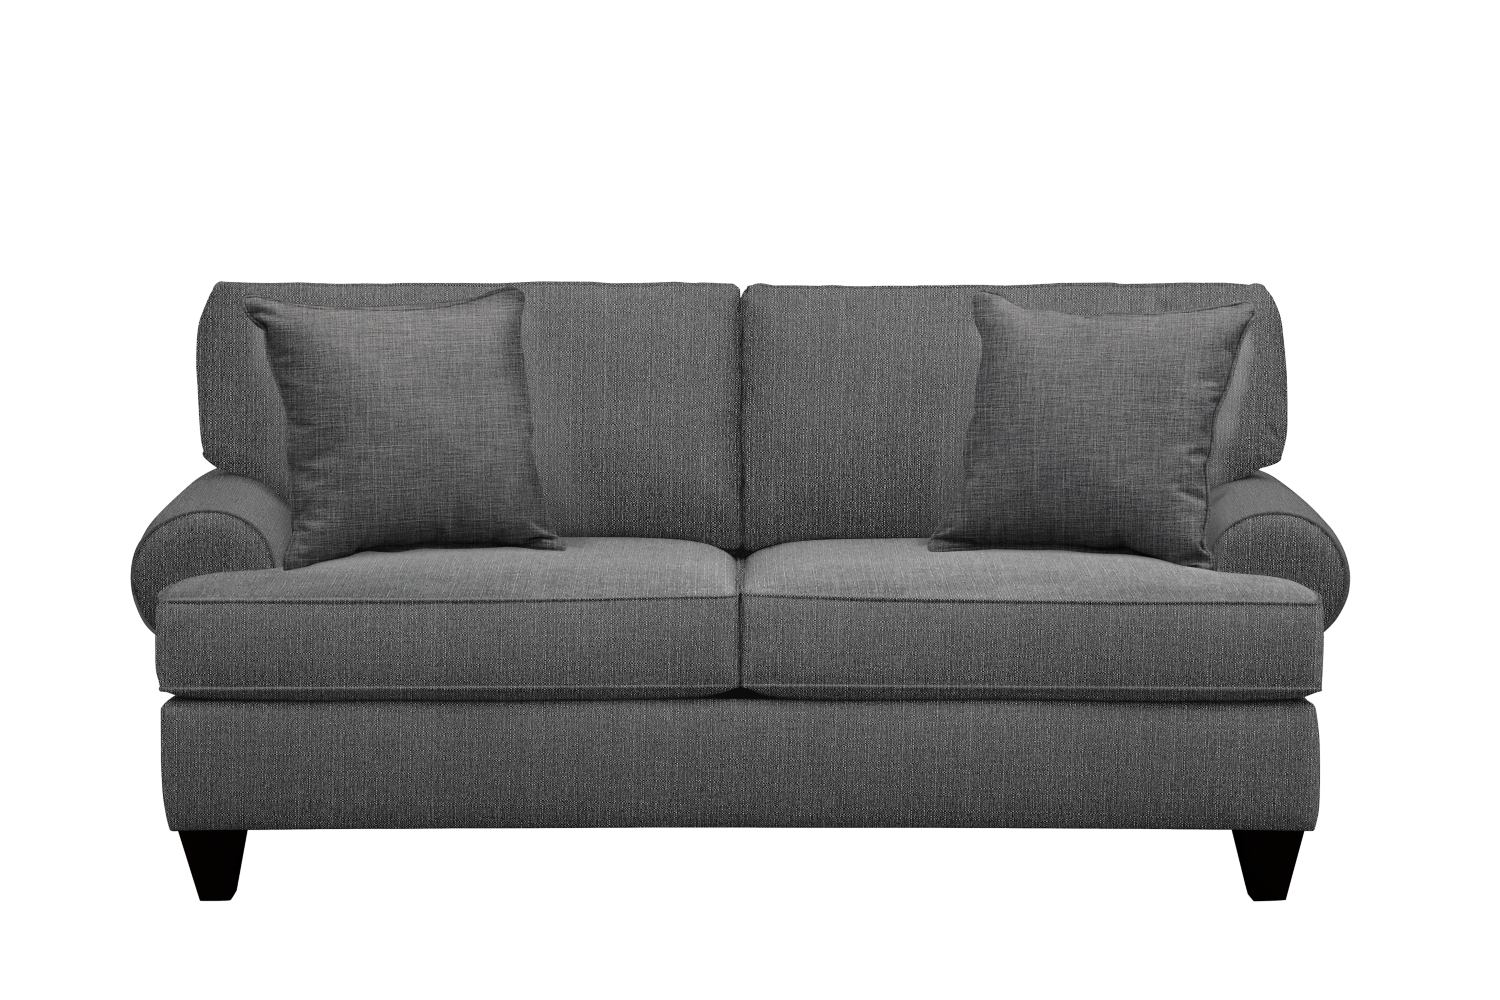 "Living Room Furniture - Bailey Roll Arm Sofa 79"" Depalma Charcoal w/ Depalma Charcoal Pillow"